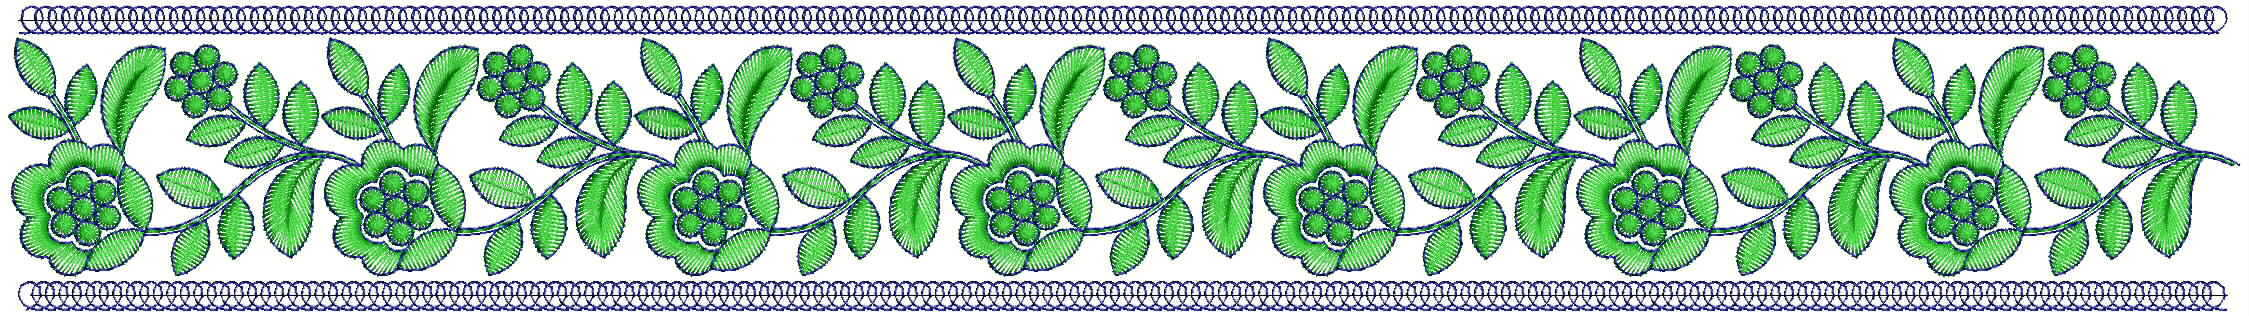 Flower Lace / Border Embroidery Design